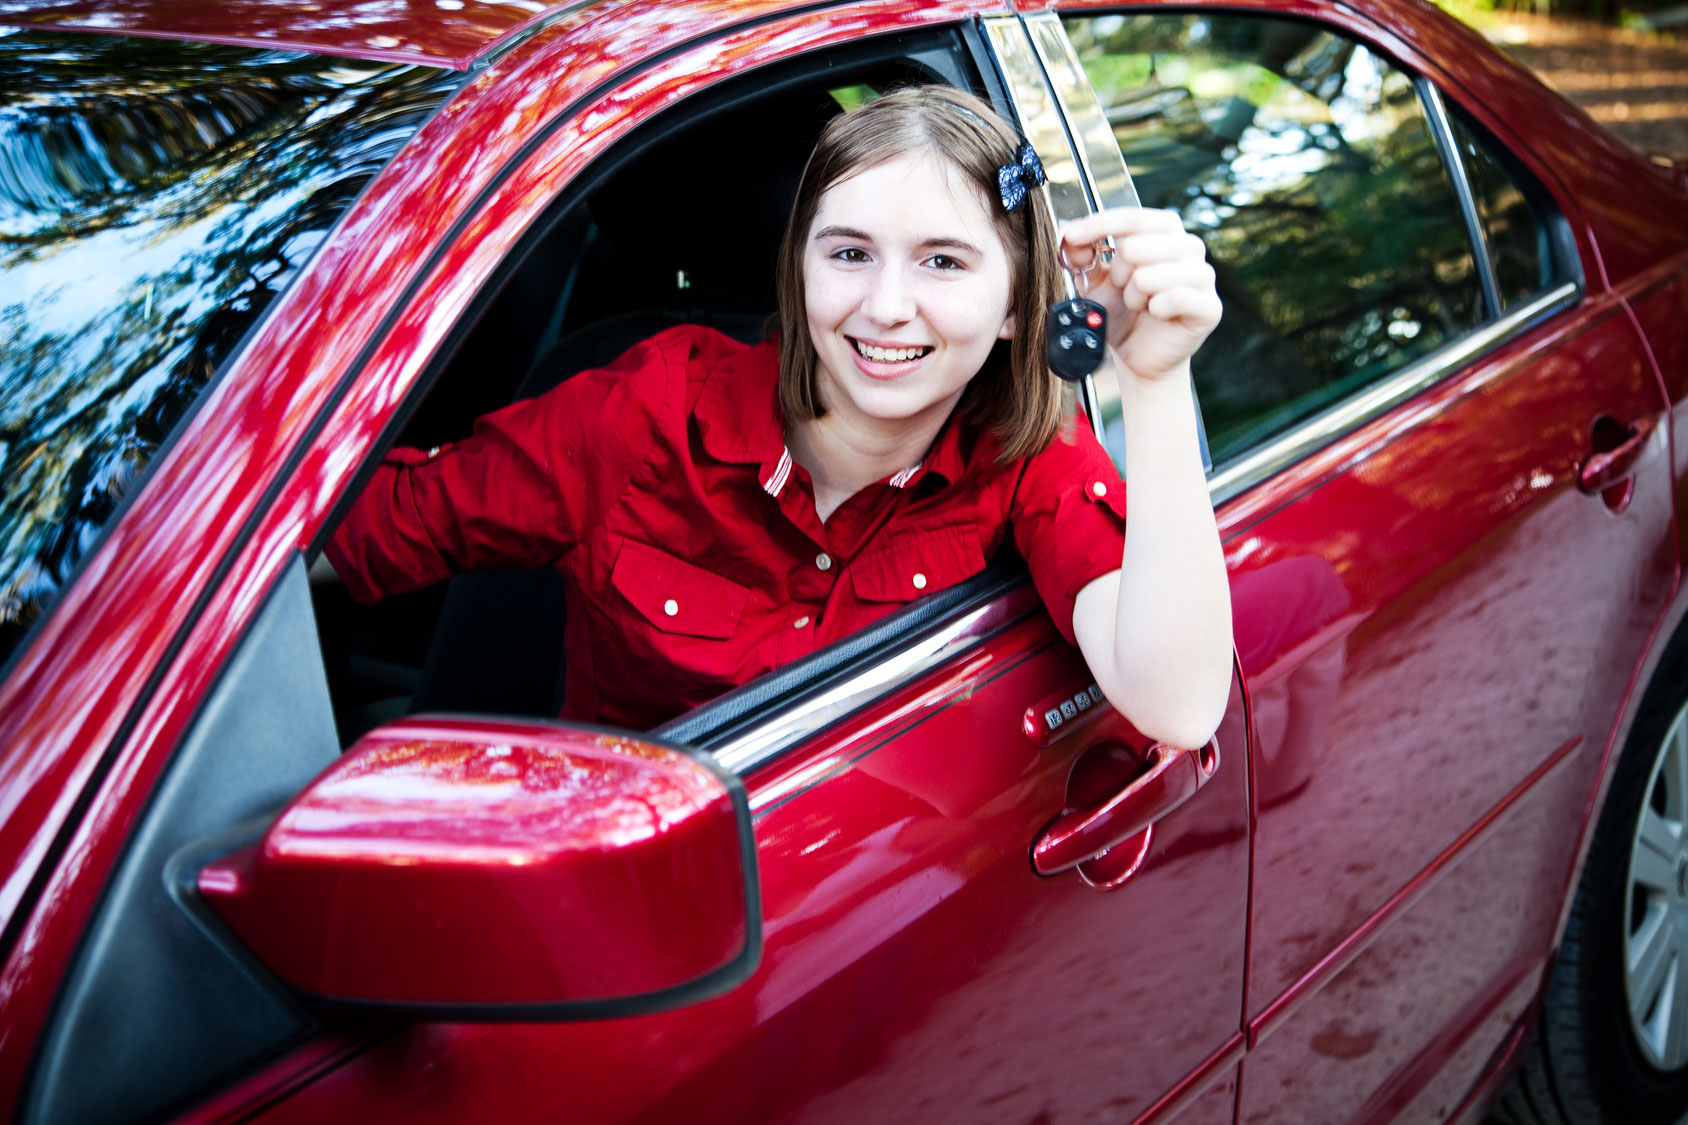 teens abuses of driving privileges Risky teen behavior: can you trust your child again 15 go  freedom or privilege that he misuses or abuses while your first reaction might be one of anger and.